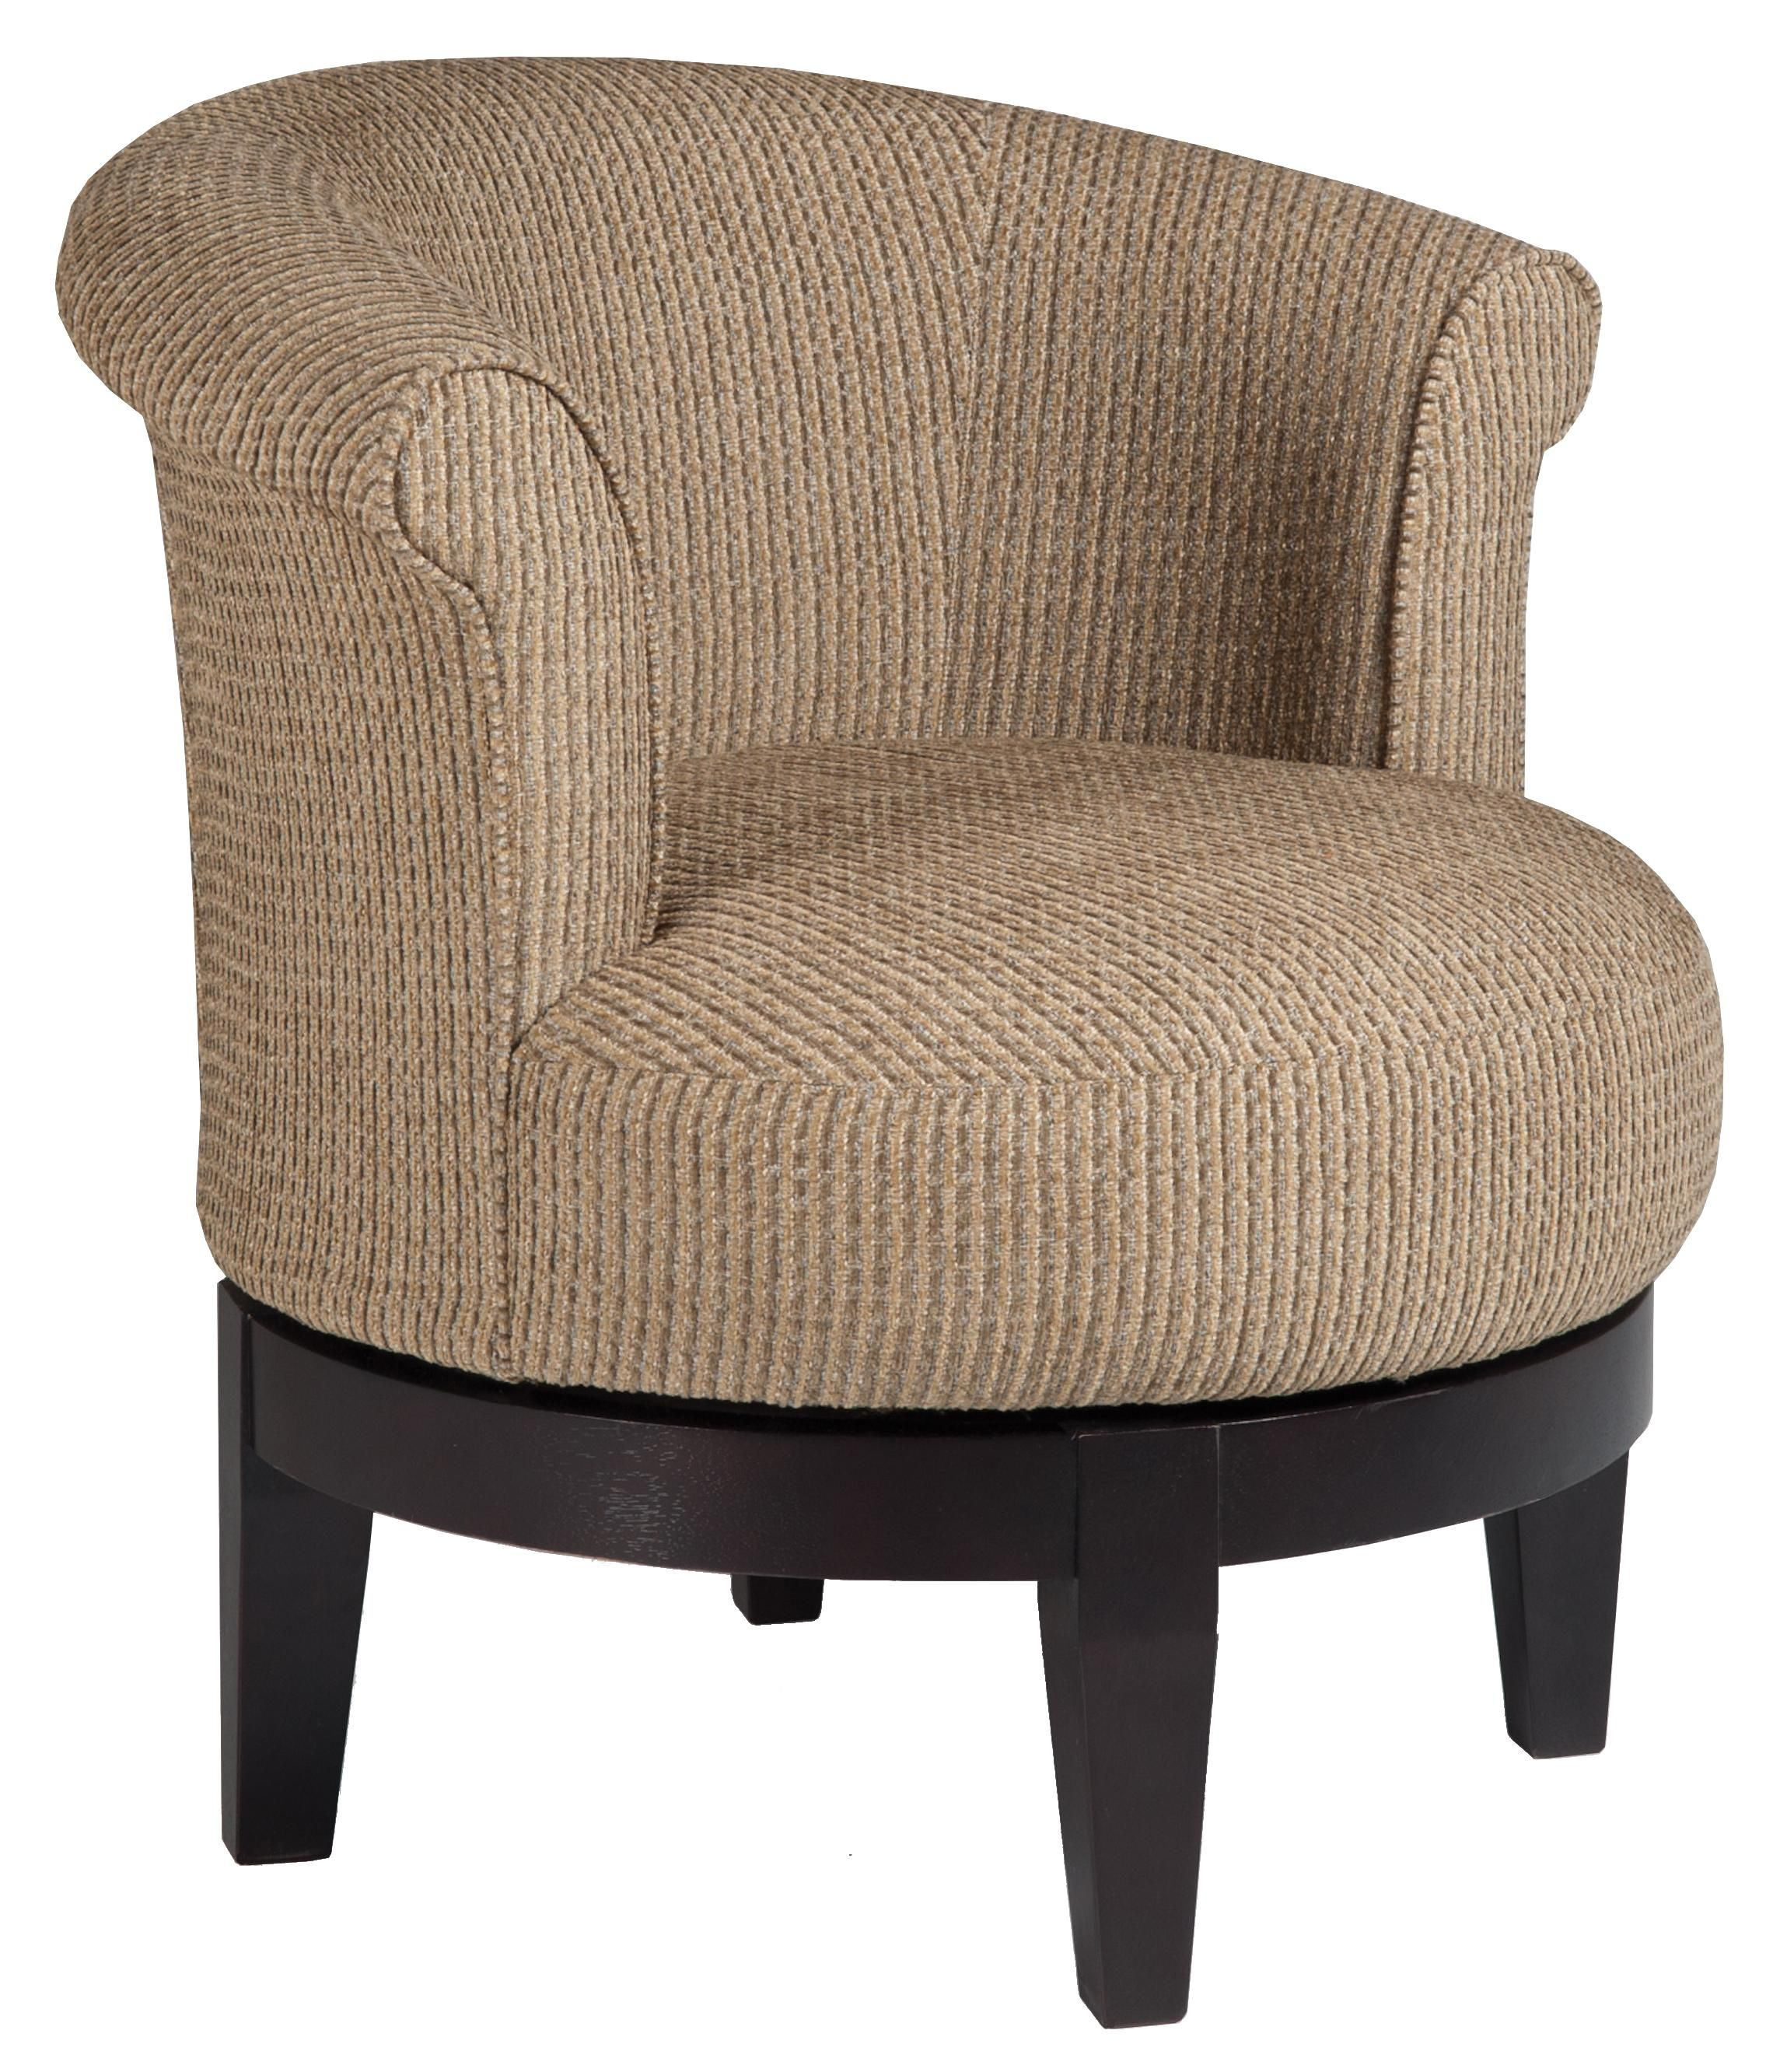 Ordinaire Chairs   Swivel Barrel Attica Swivel Chair By Best Home Furnishings · Living  Room ...